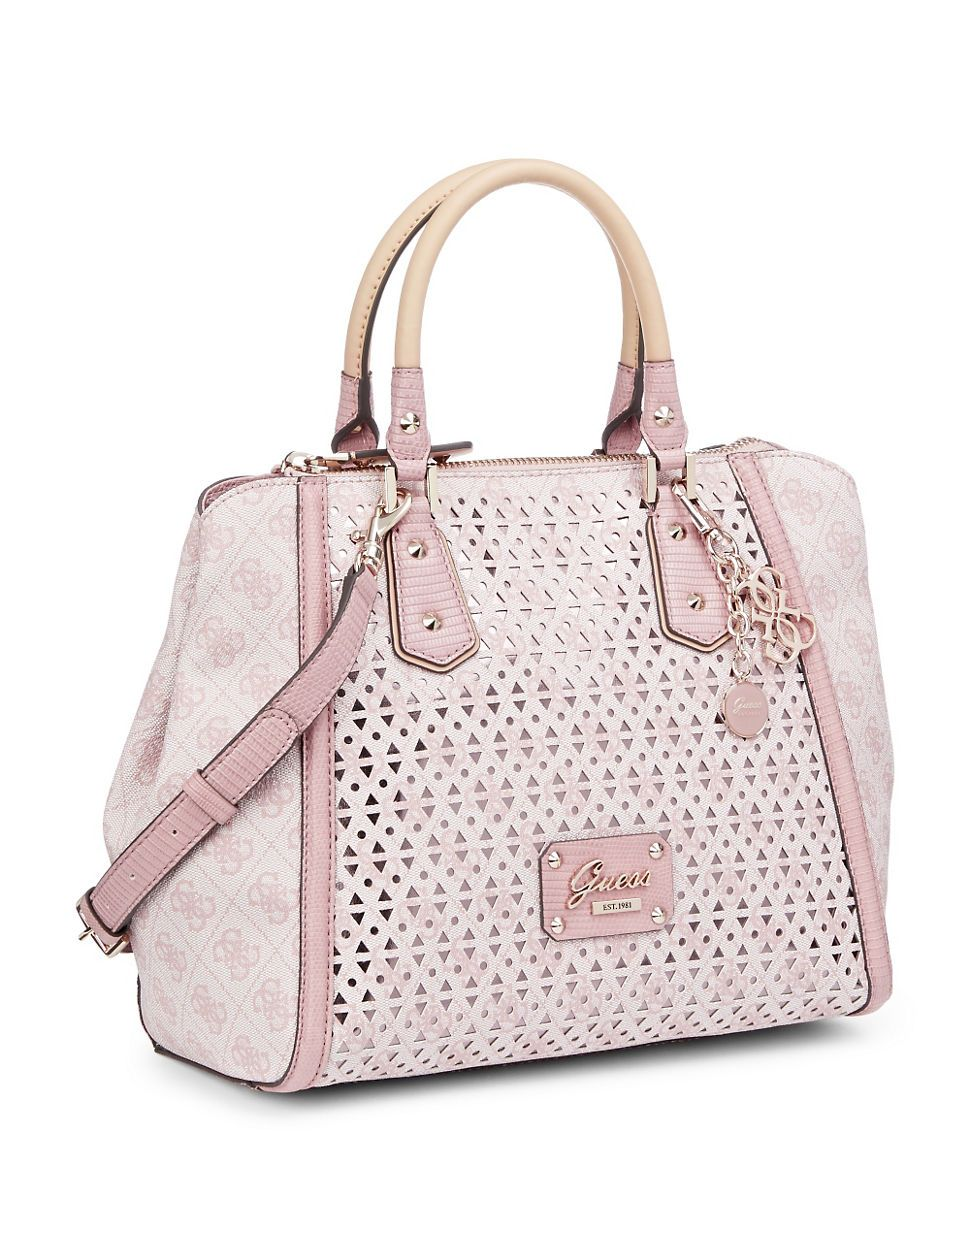 6d876fd53a56 Guess Handbags